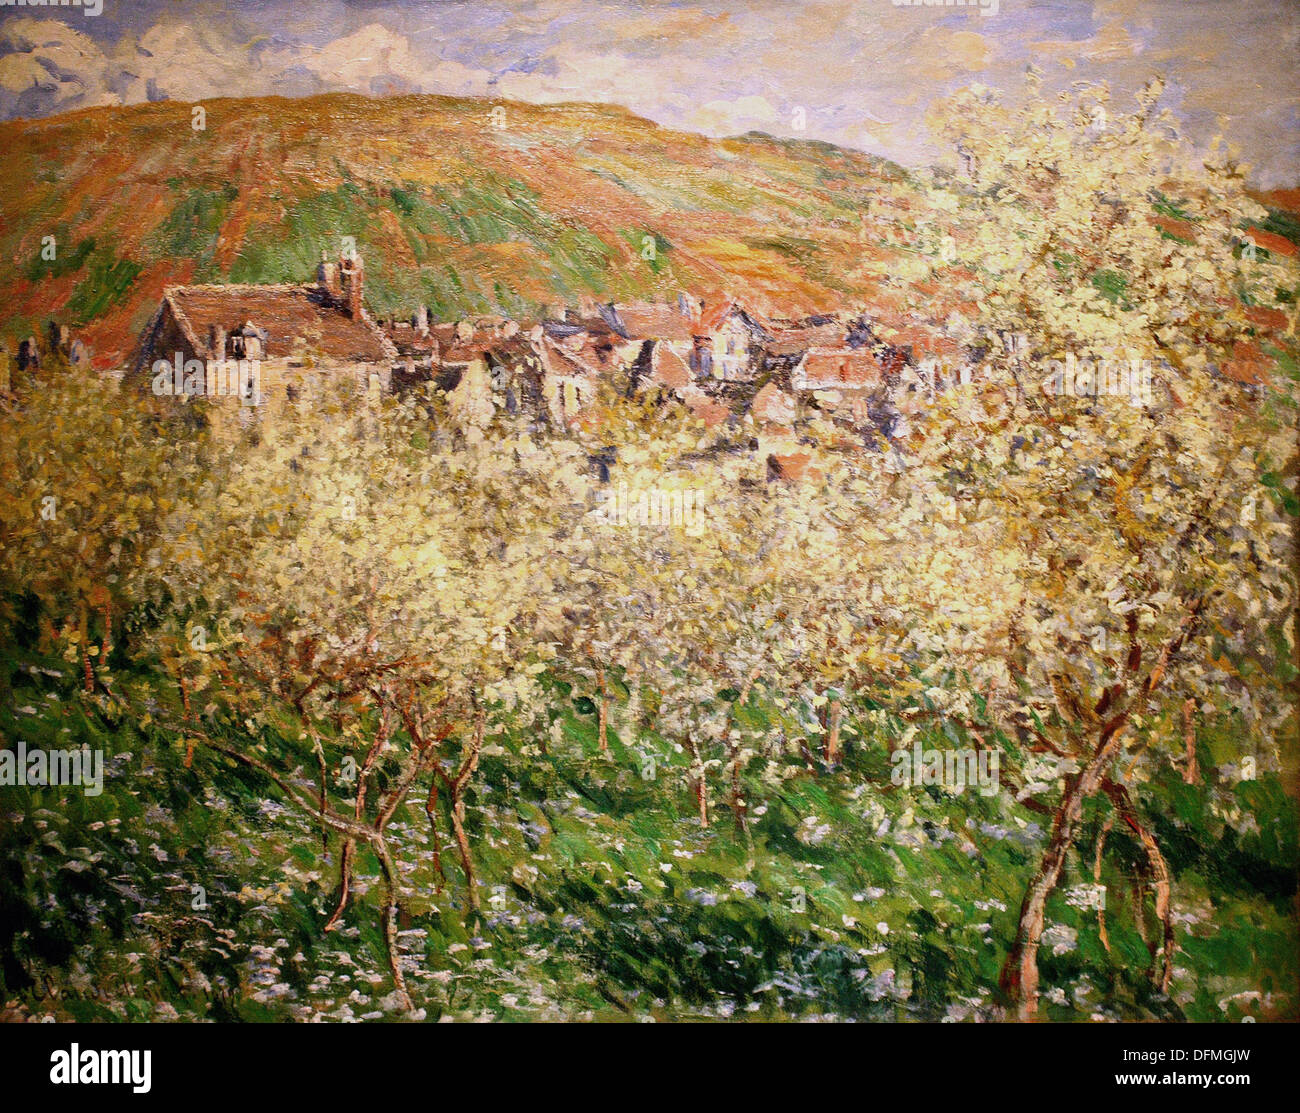 Claude MONET - Plum trees in blossom - 1879 - Museum of Fine Arts - Budapest, Hungary - Stock Image